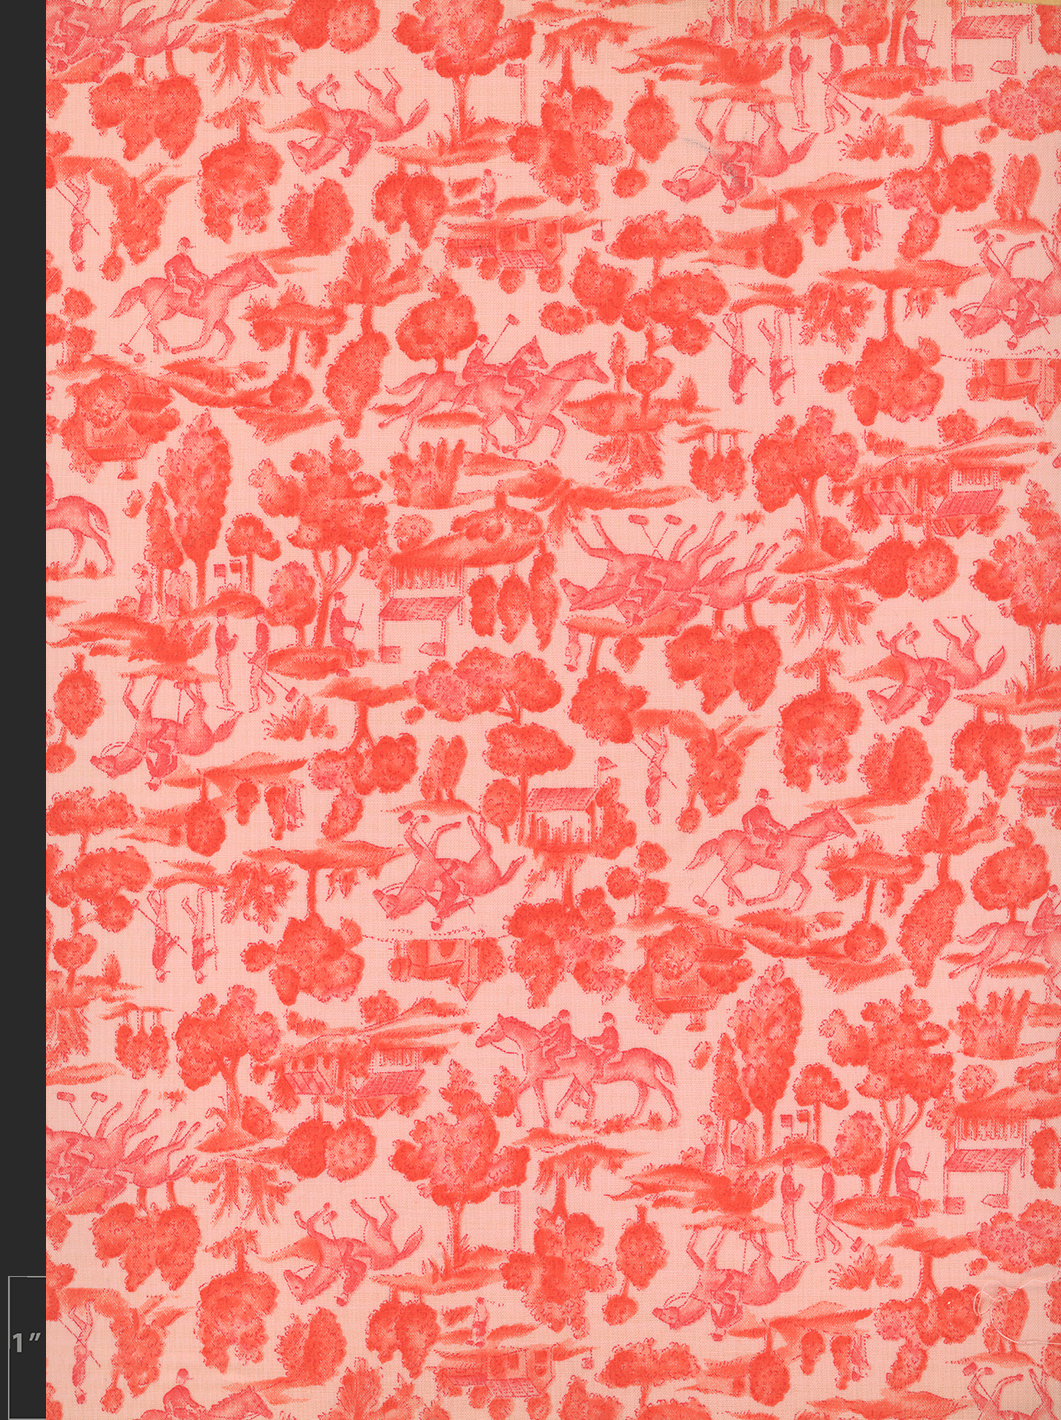 Marielle Bancou Segal conversational printed textile design for The Villager 1960s full 3 Drexel Digital Museum 11F